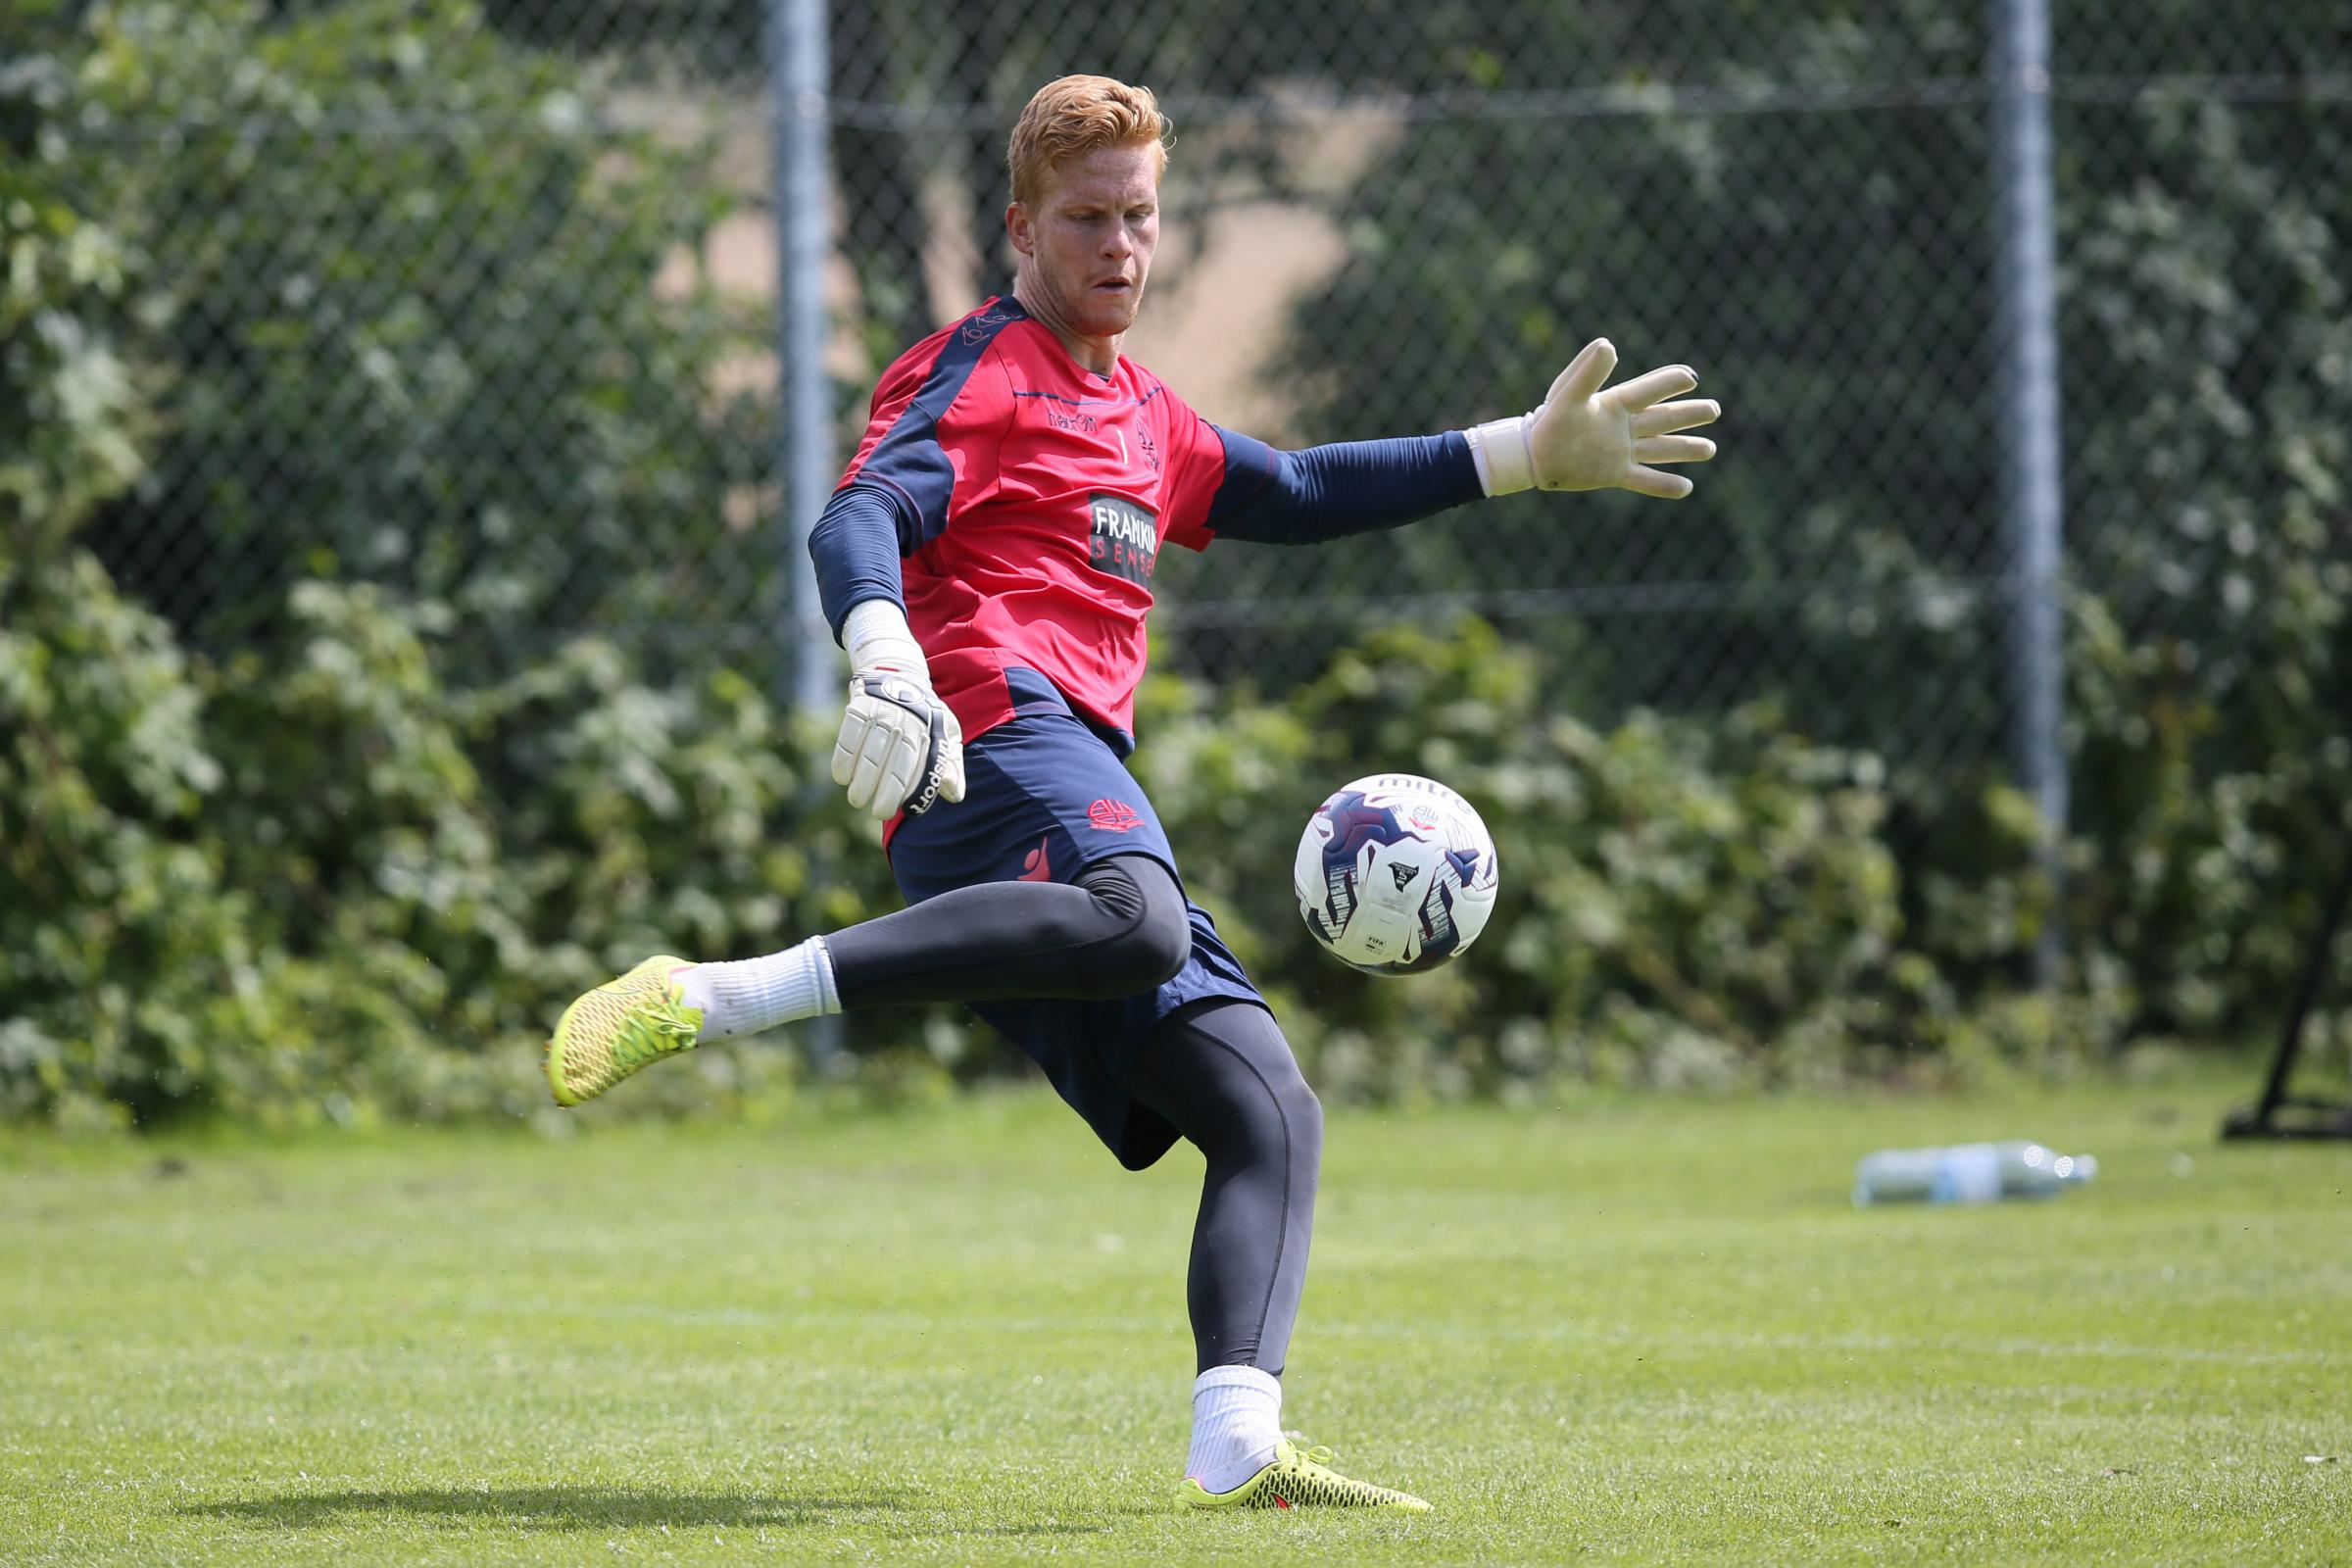 Bolton Wanderers goalkeeper Ben Amos during training, Malmo, Sweden on July 8th 2016.